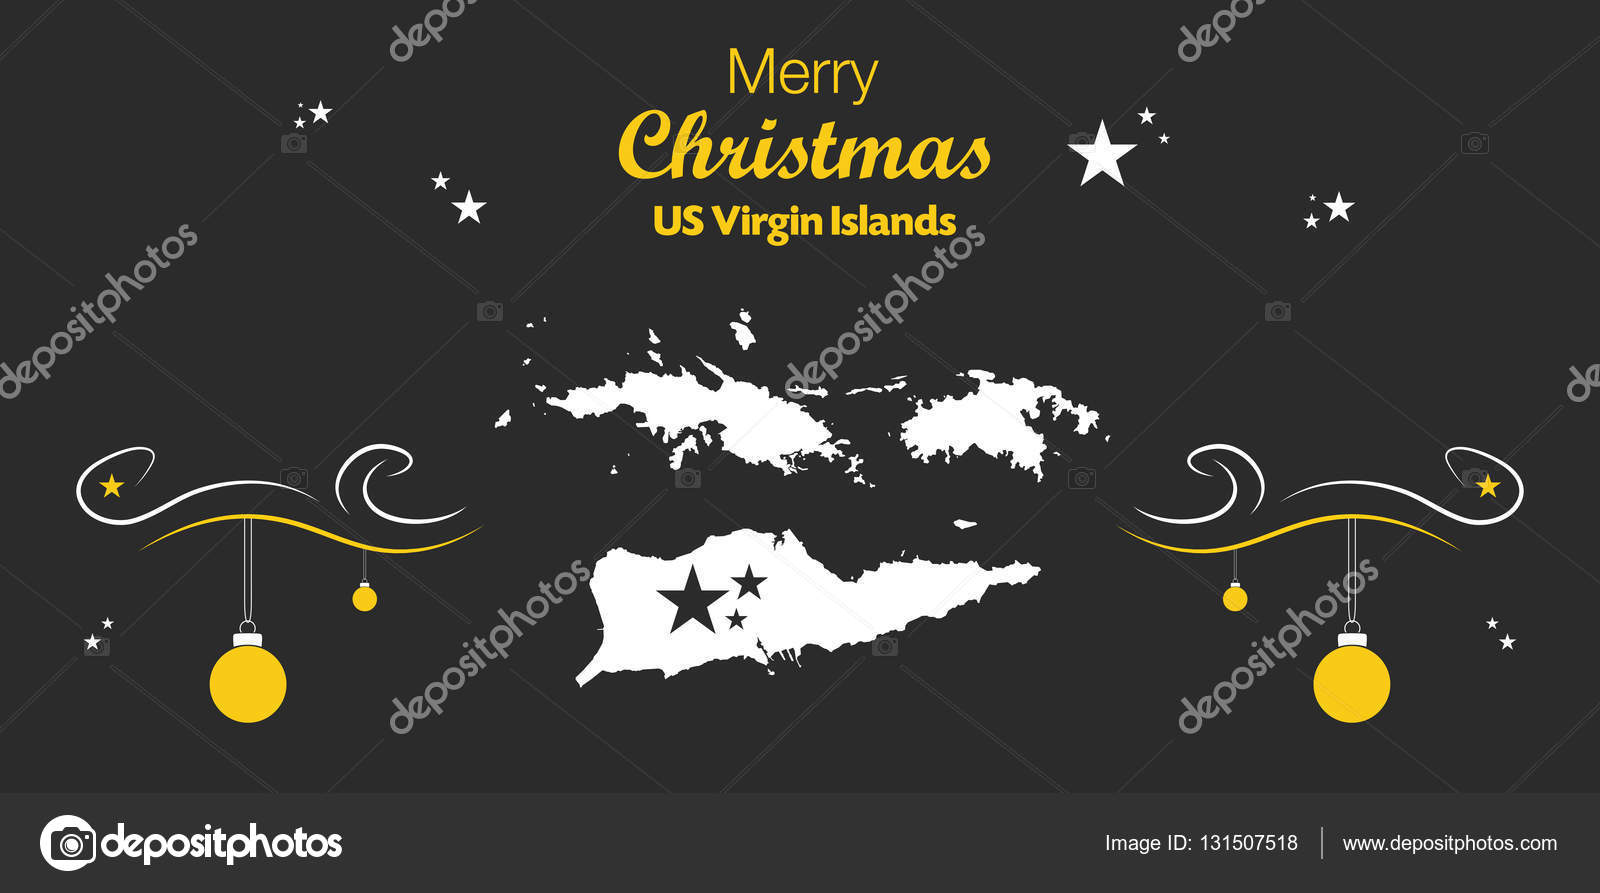 Merry Christmas theme with map of US Virgin Islands — Stock Vector ...